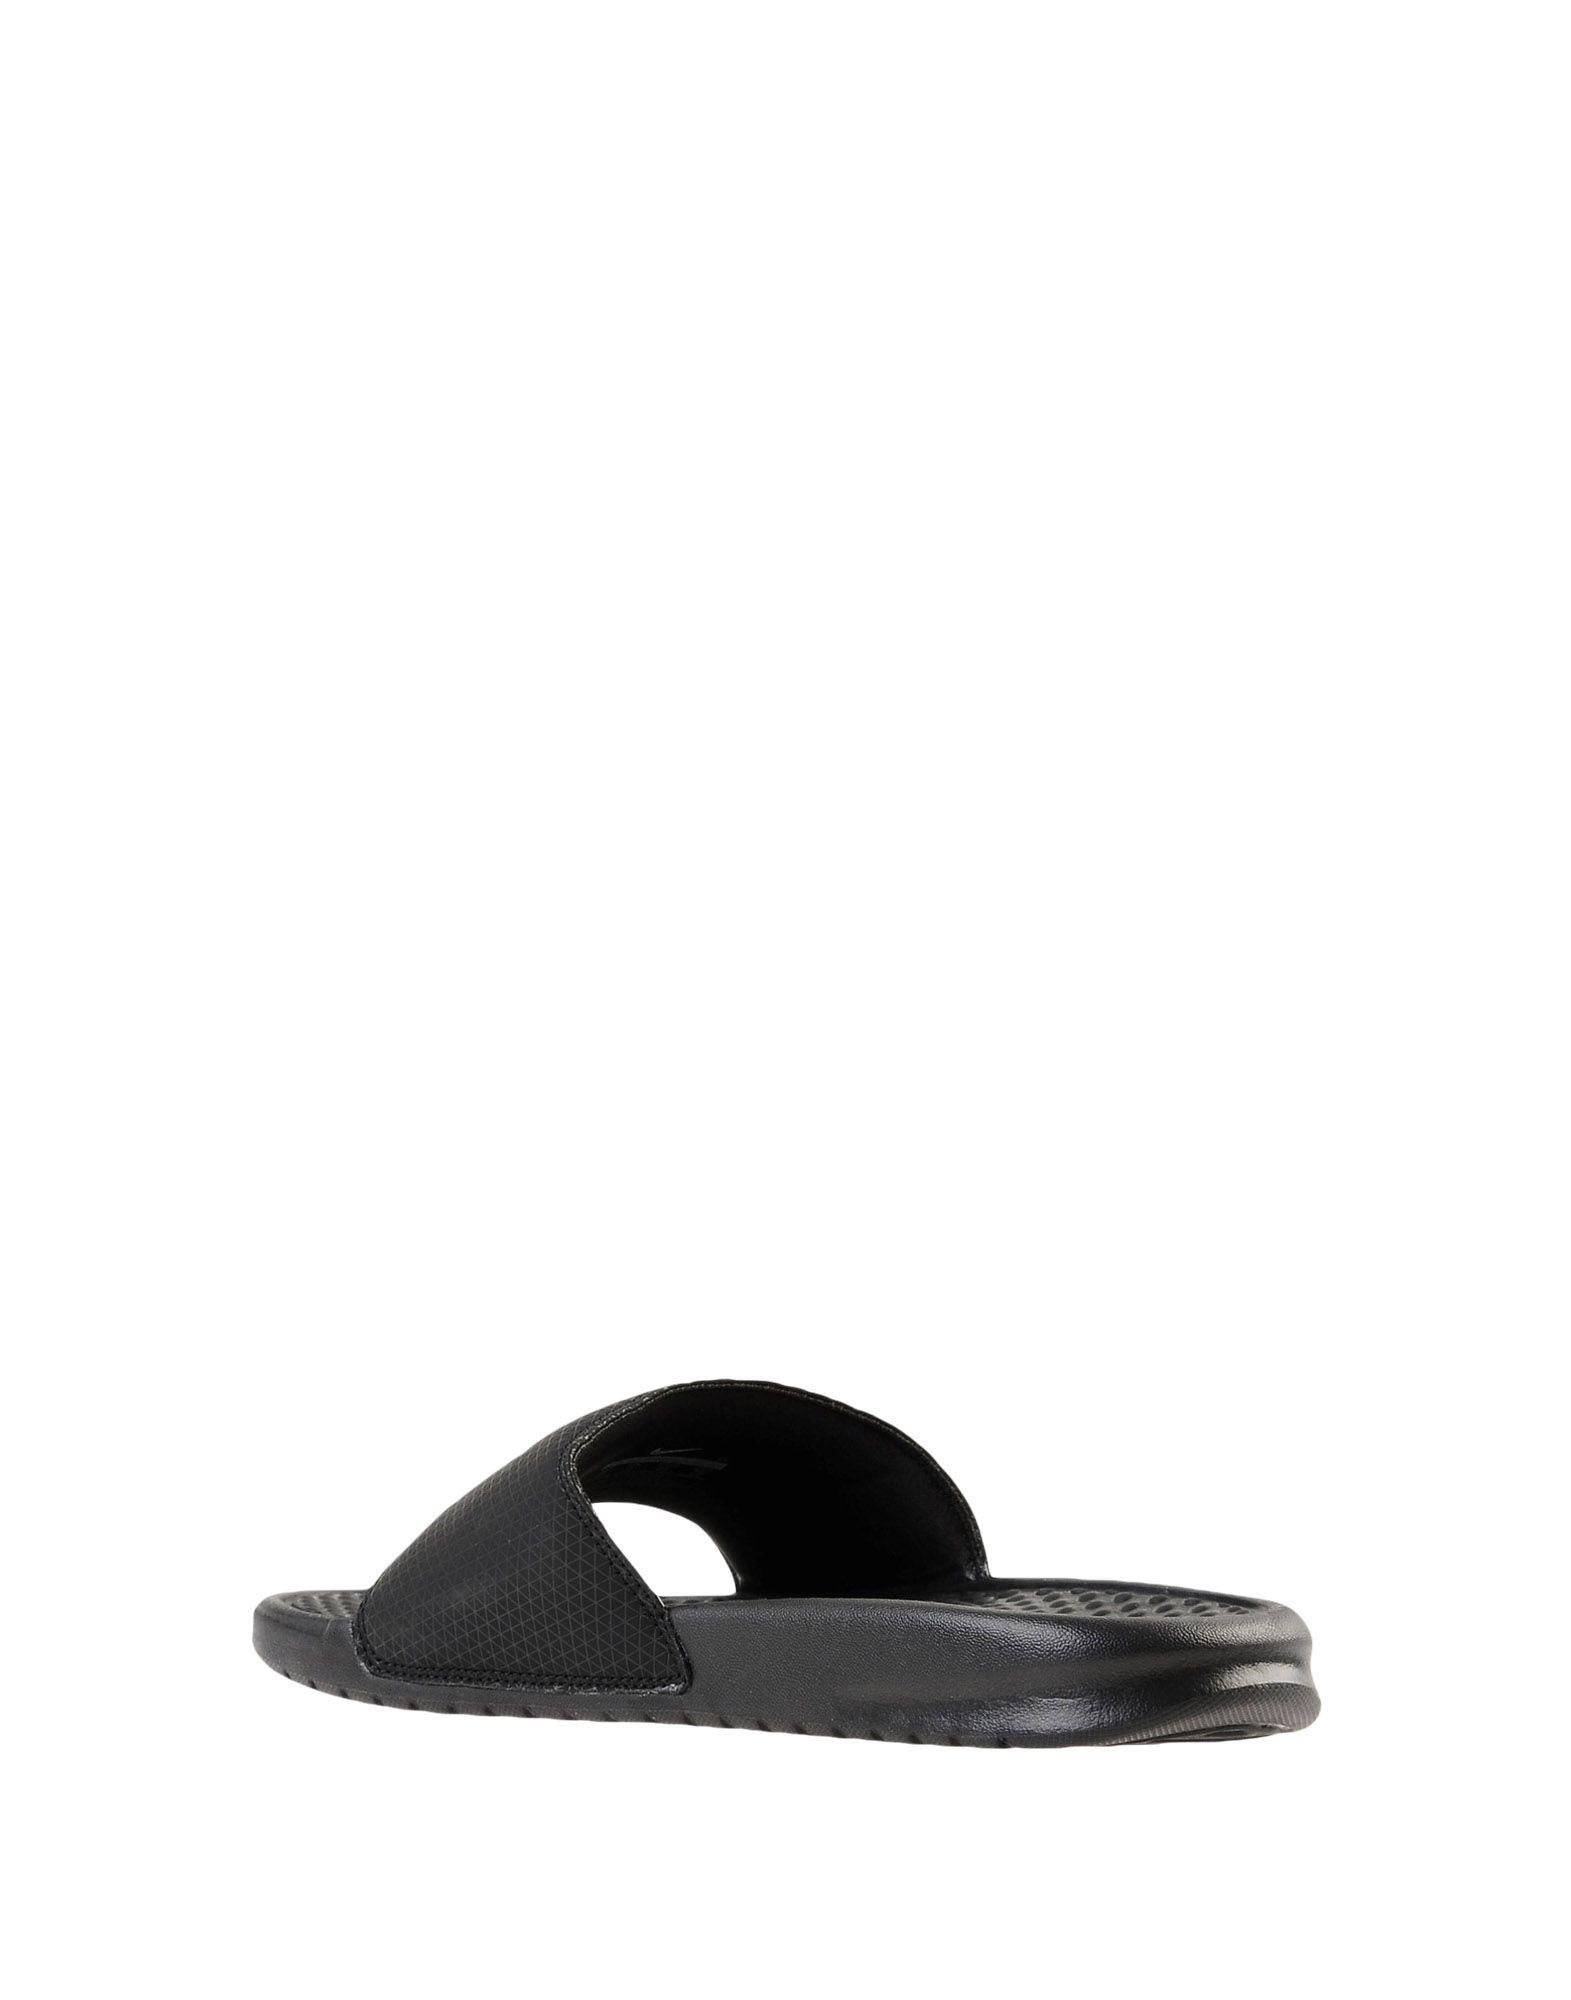 d8db565d22aa Nike Sandals in Black for Men - Save 68% - Lyst